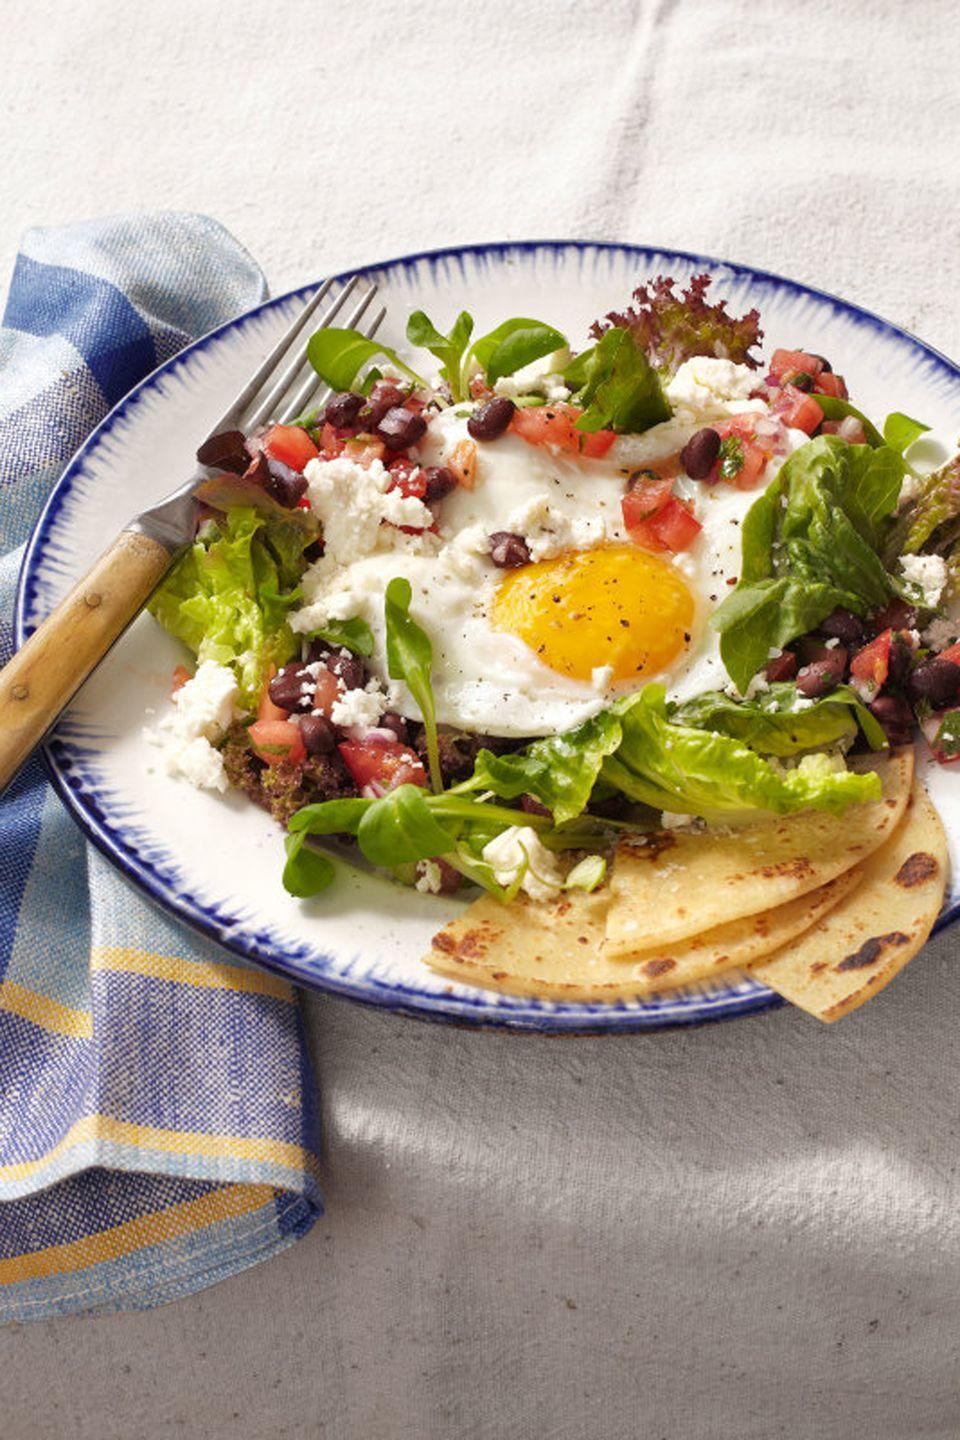 """<p>Say olé to the new year while digging into this delicious medley of <a href=""""https://www.goodhousekeeping.com/food-recipes/g3674/best-mexican-recipes/"""" rel=""""nofollow noopener"""" target=""""_blank"""" data-ylk=""""slk:Mexican"""" class=""""link rapid-noclick-resp"""">Mexican</a> flavors. </p><p><em><a href=""""https://www.goodhousekeeping.com/food-recipes/a14633/huevos-rancheros-salad-recipe-clv0214/"""" rel=""""nofollow noopener"""" target=""""_blank"""" data-ylk=""""slk:Get the recipe for Huevos Rancheros Salad »"""" class=""""link rapid-noclick-resp"""">Get the recipe for Huevos Rancheros Salad »</a></em></p>"""